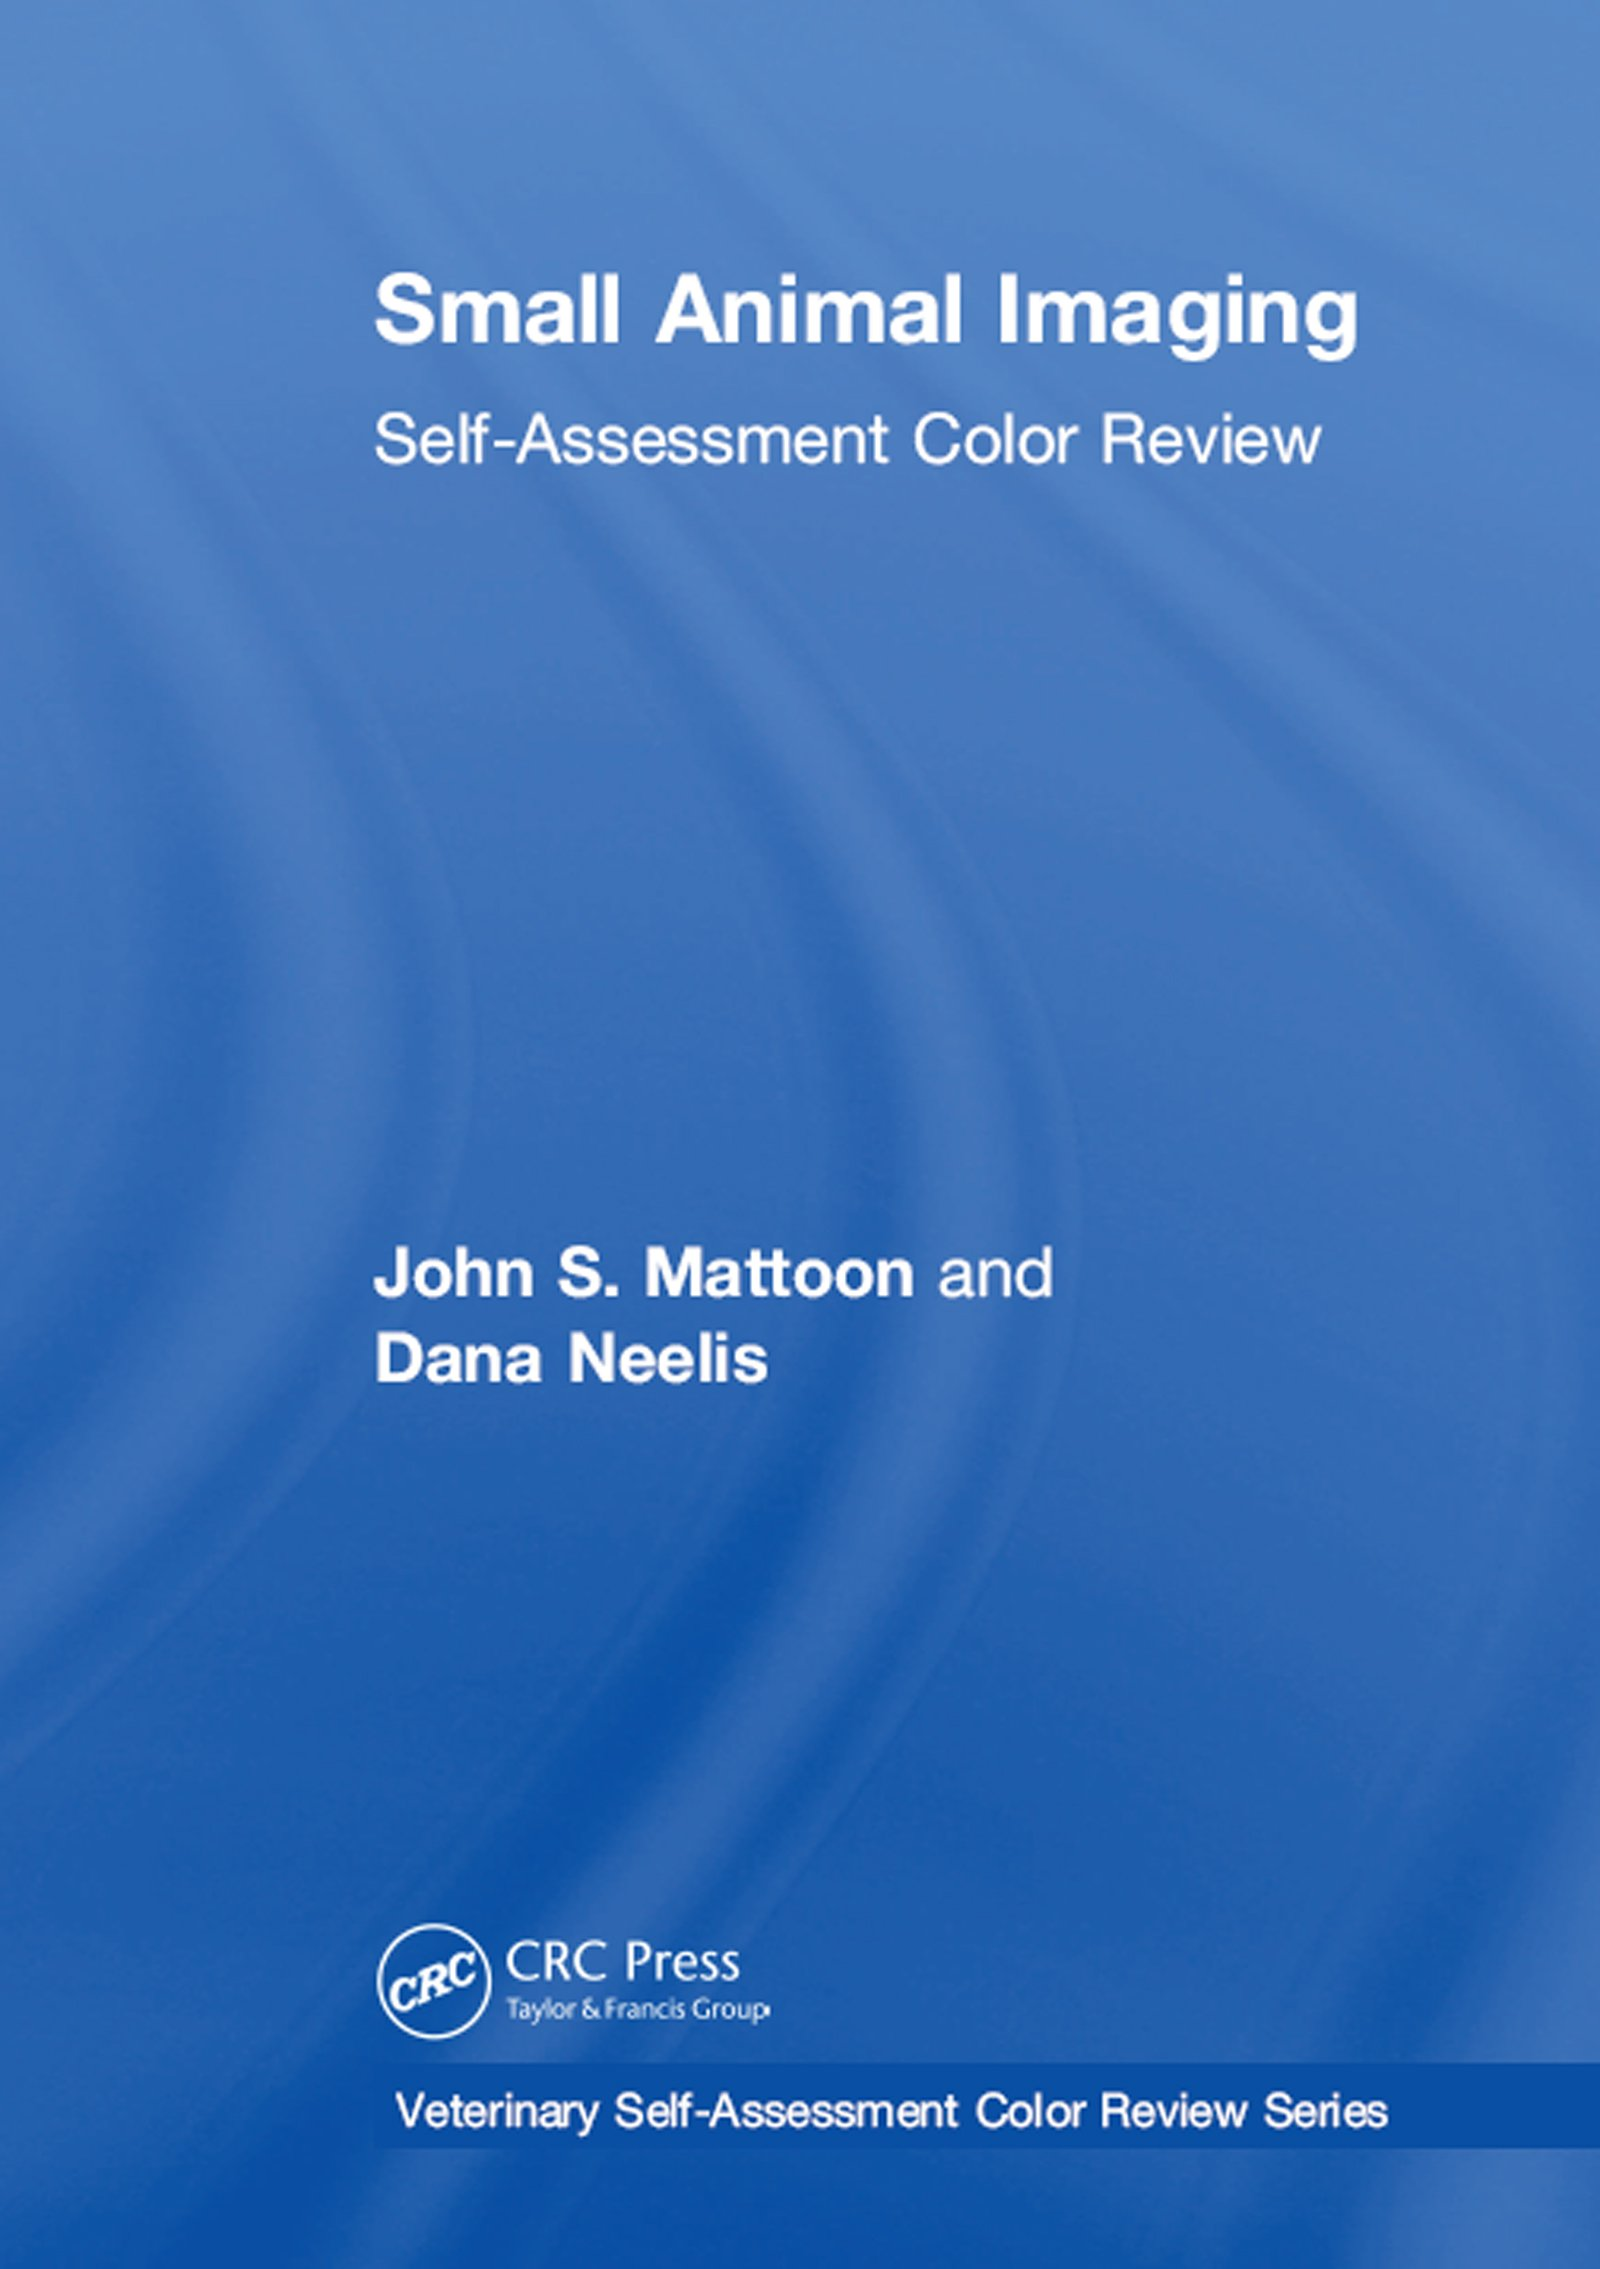 Small Animal Imaging: Self-Assessment Review (Veterinary Self-Assessment Color Review Series) (English Edition)